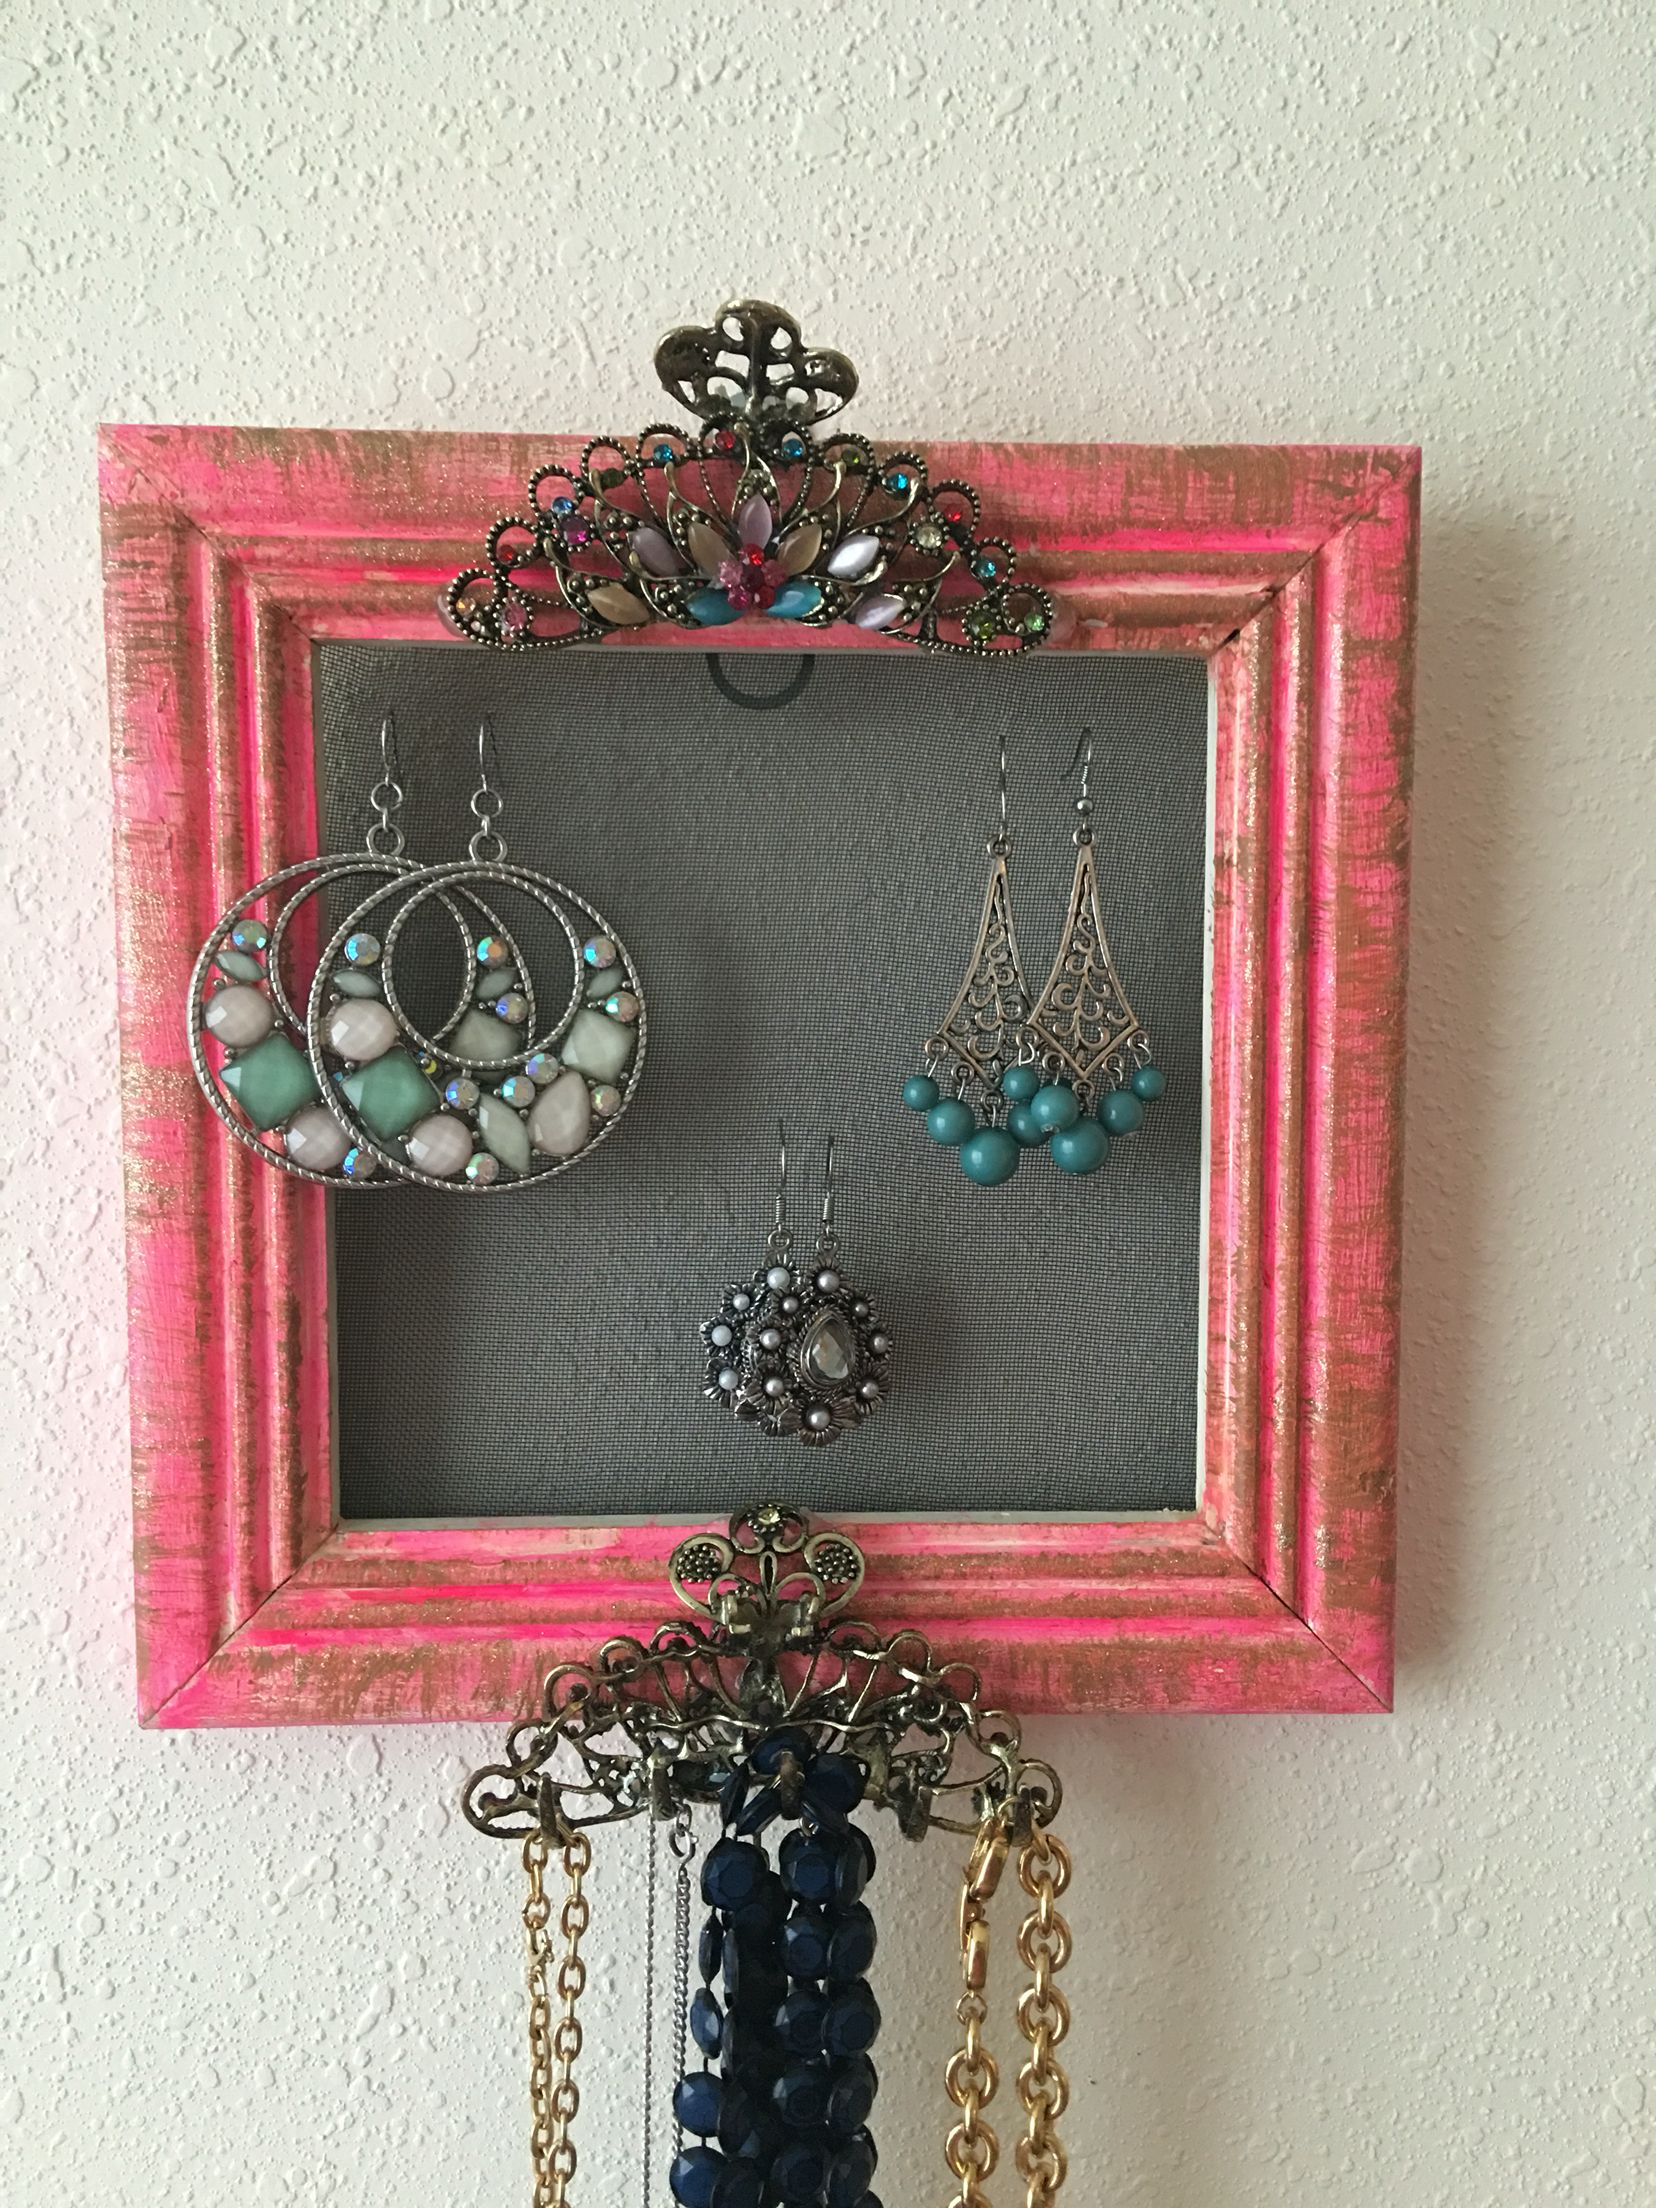 Diy Jewelry Organizer Made Of Old Clock Frame And Hair